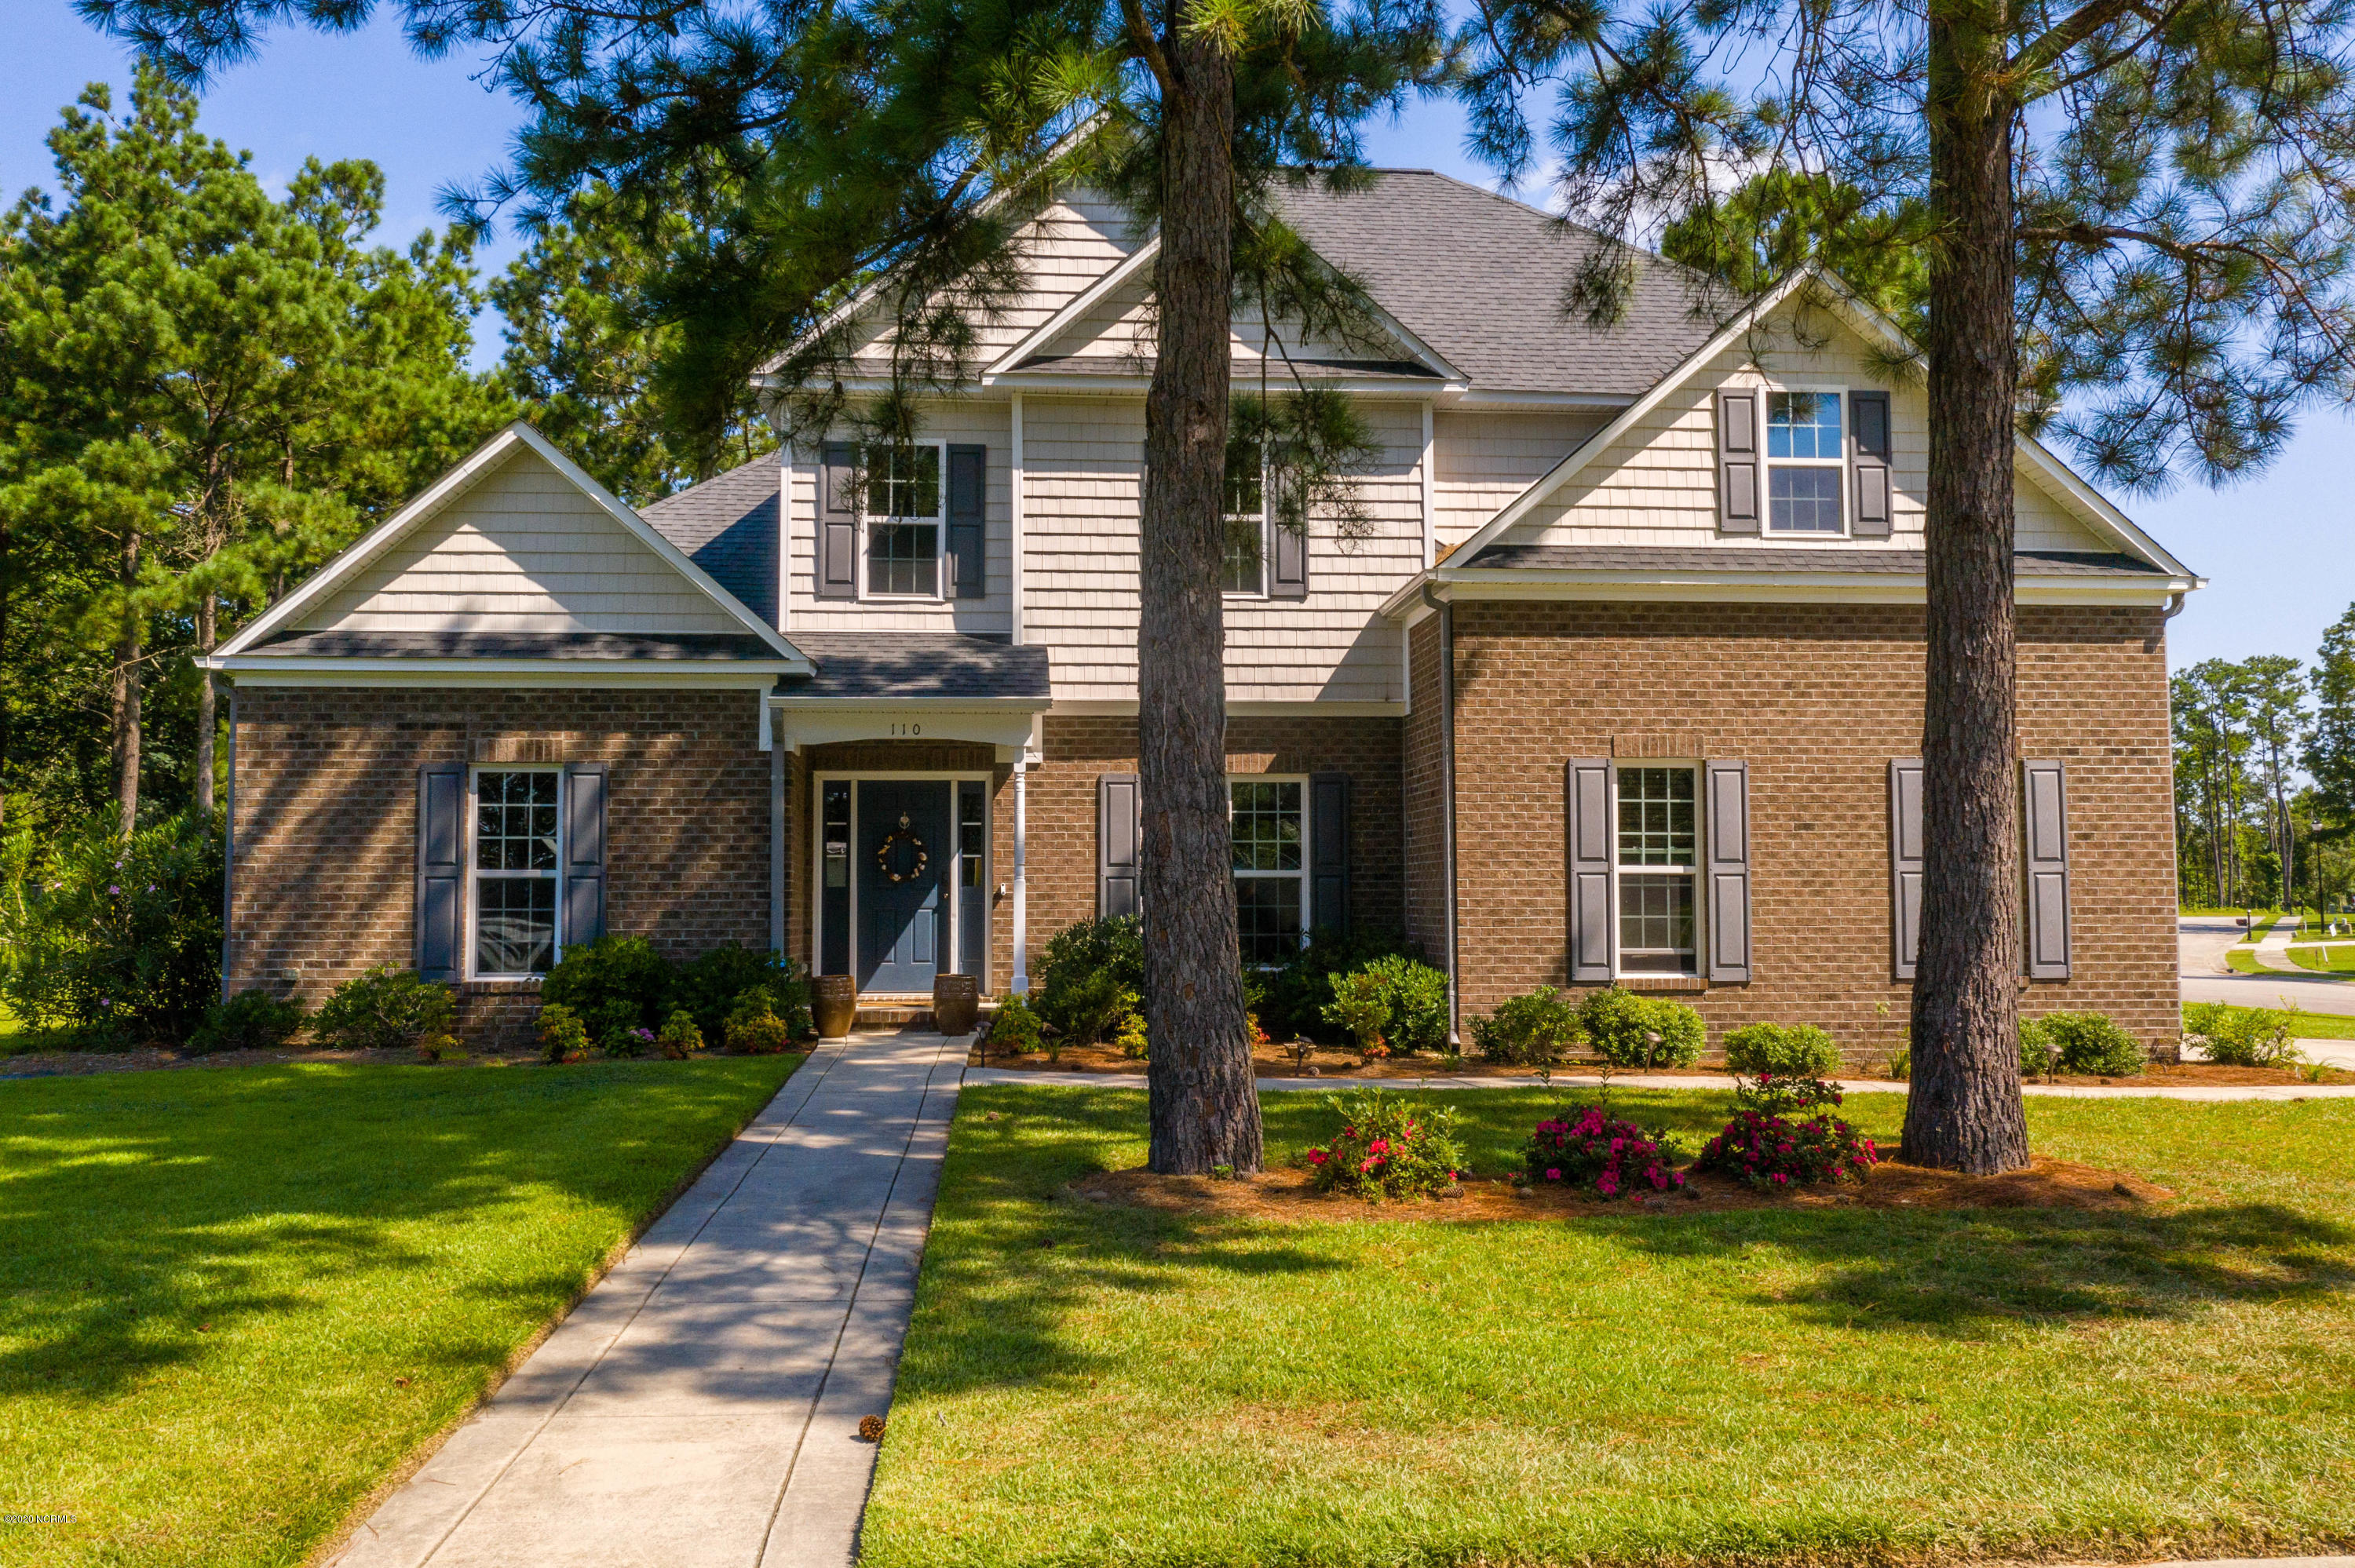 110 Pine Bluff Road, Swansboro, North Carolina 28584, 4 Bedrooms Bedrooms, ,3 BathroomsBathrooms,Residential,For Sale,Pine Bluff,100228228